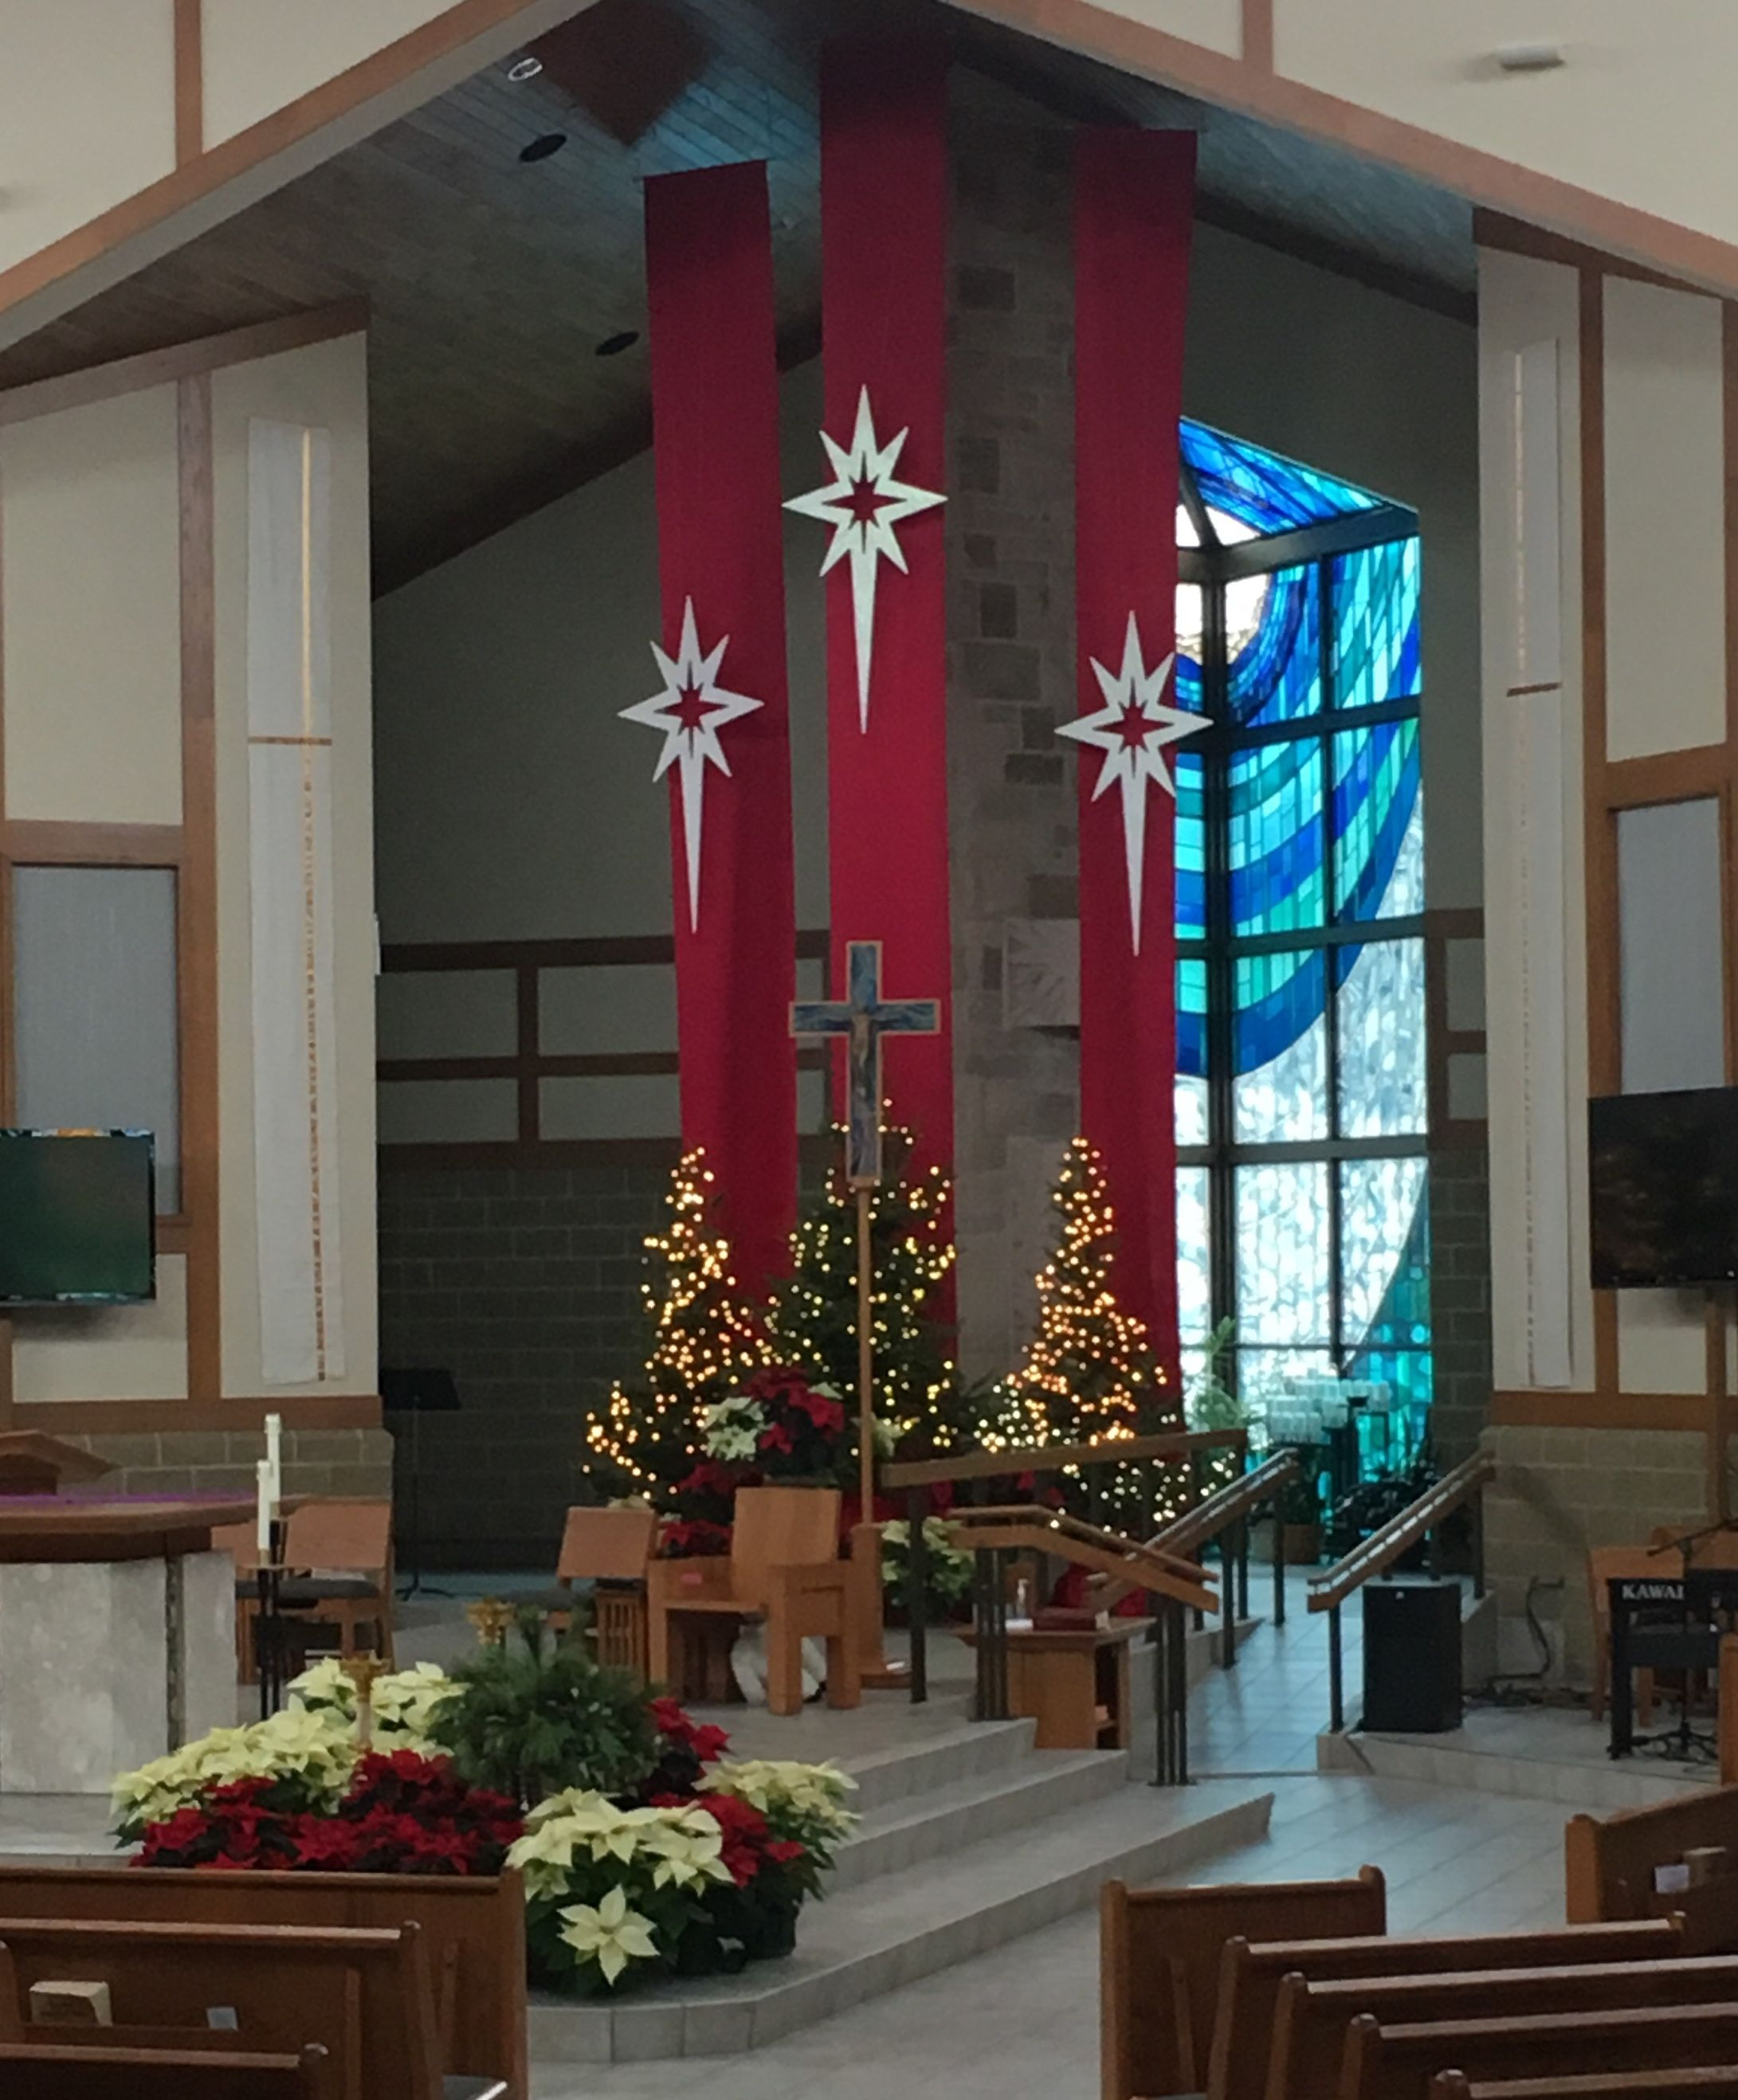 Alter Decoration: For Chapel Advent Deco 2018